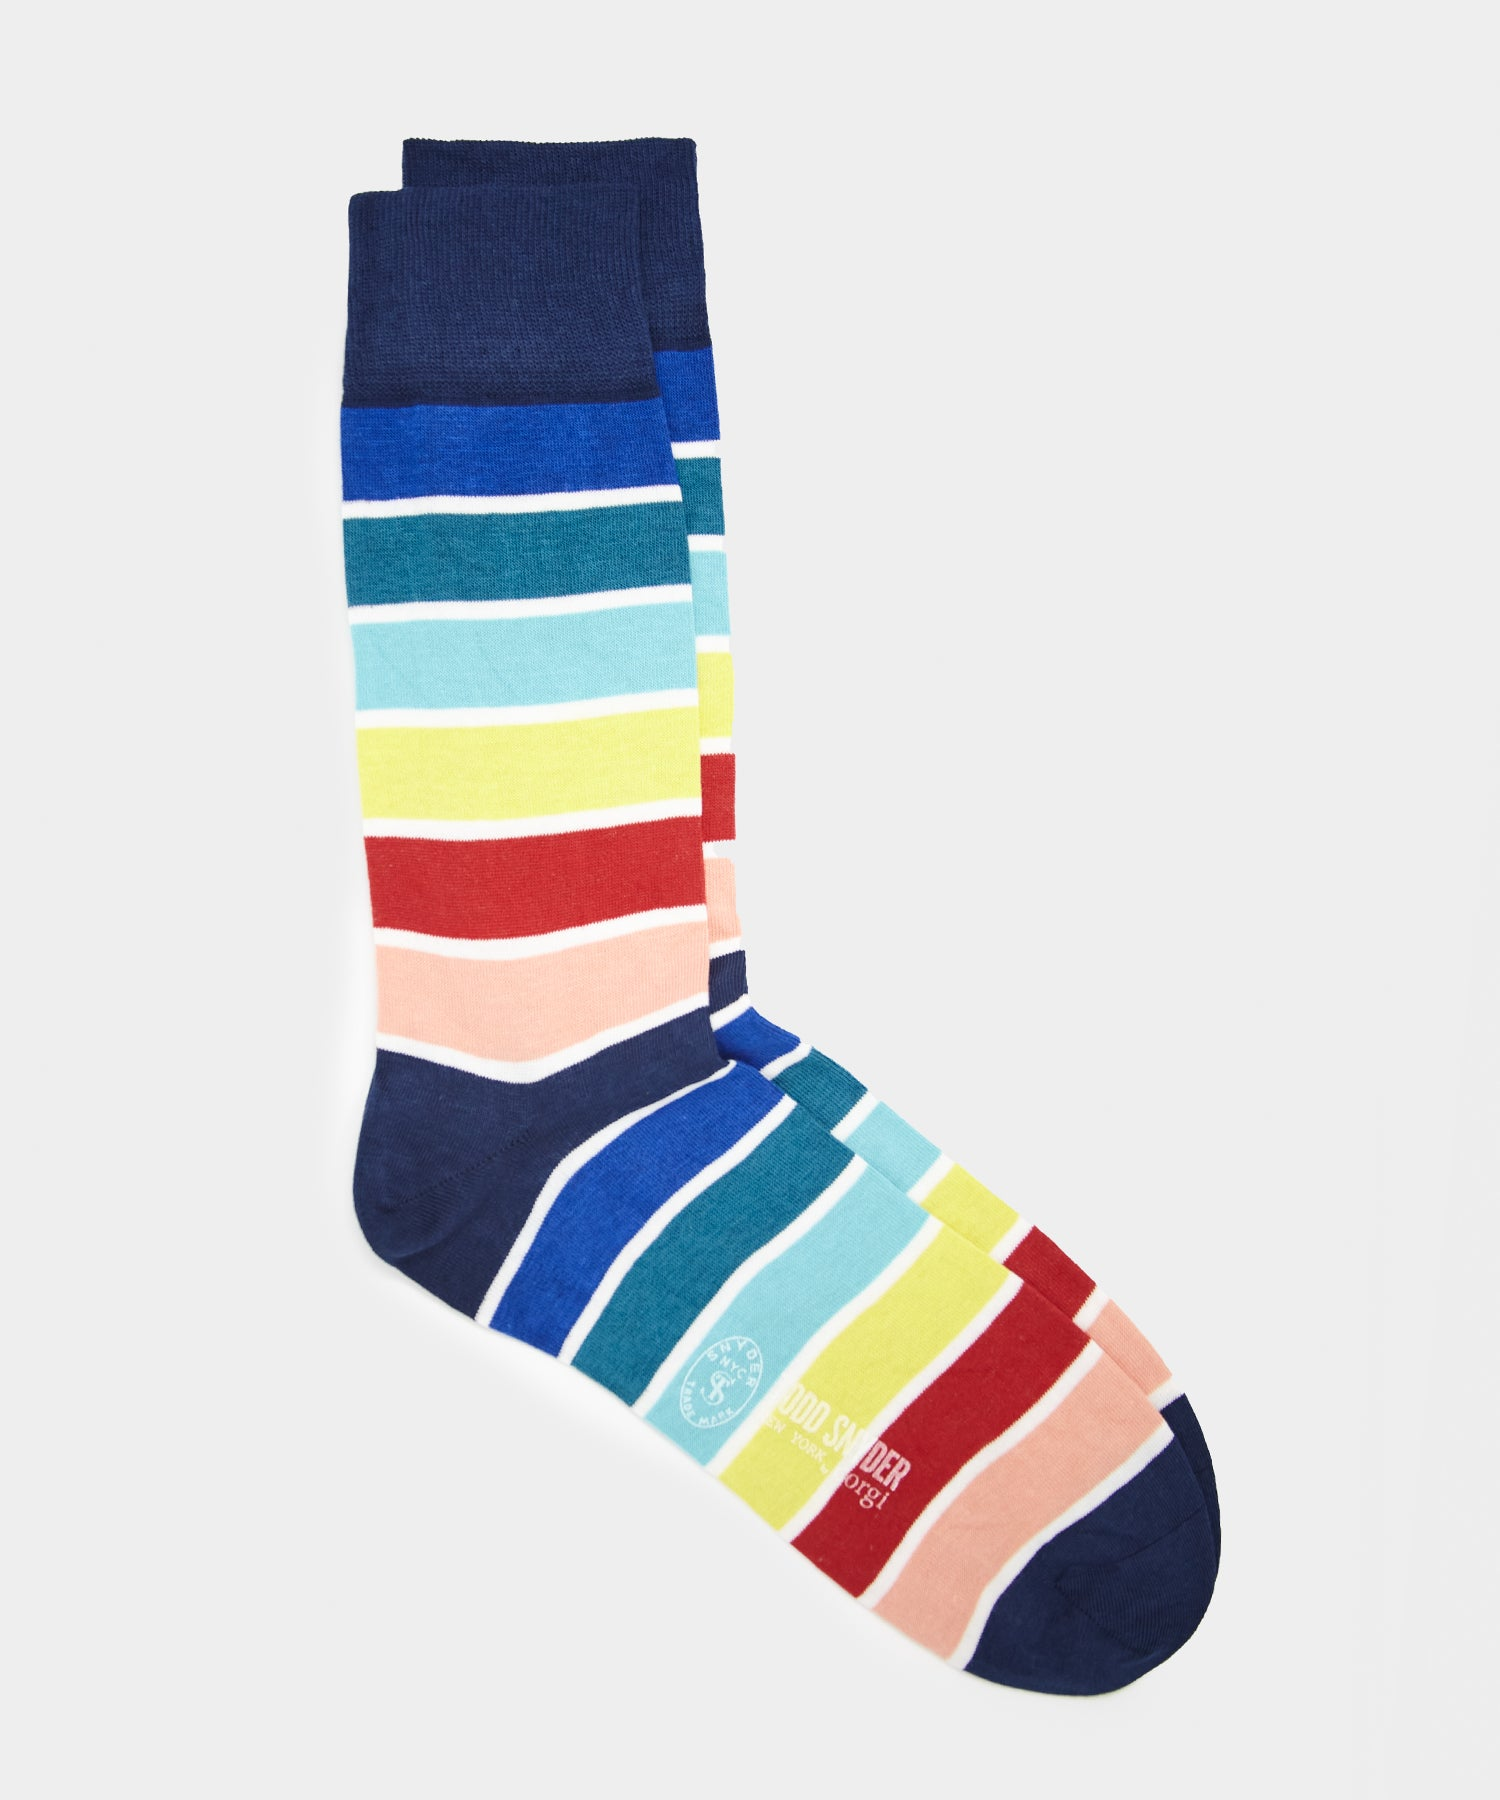 Corgi Multi Stripe Sock in Yale